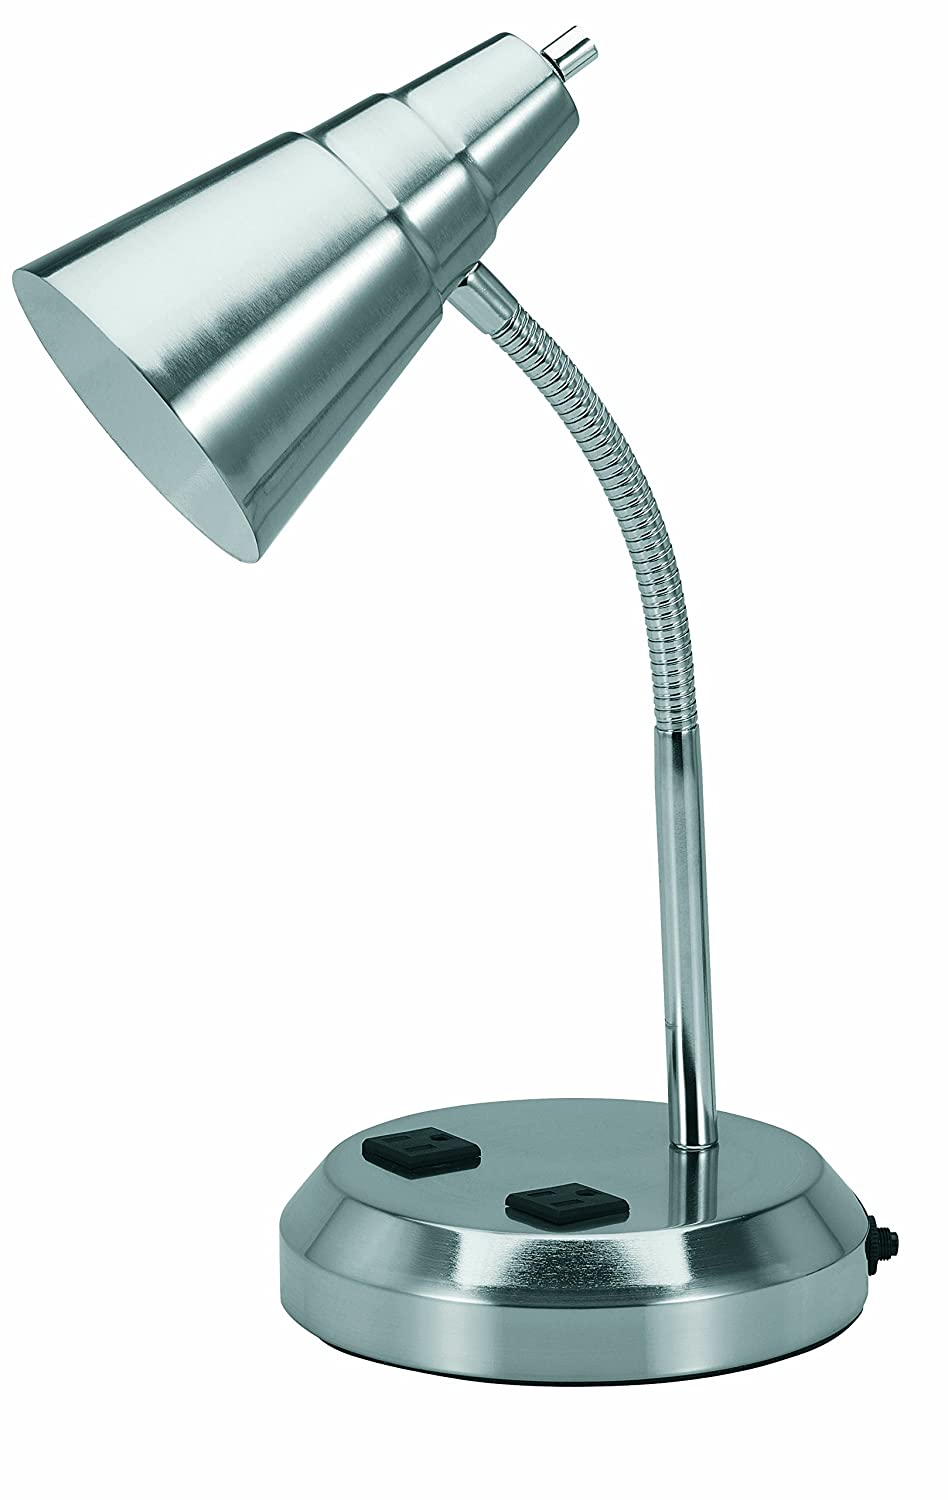 Famous Amazon.com: V-LIGHT Charging Outlet CFL Desk Lamp with 2 Grounded  LL75